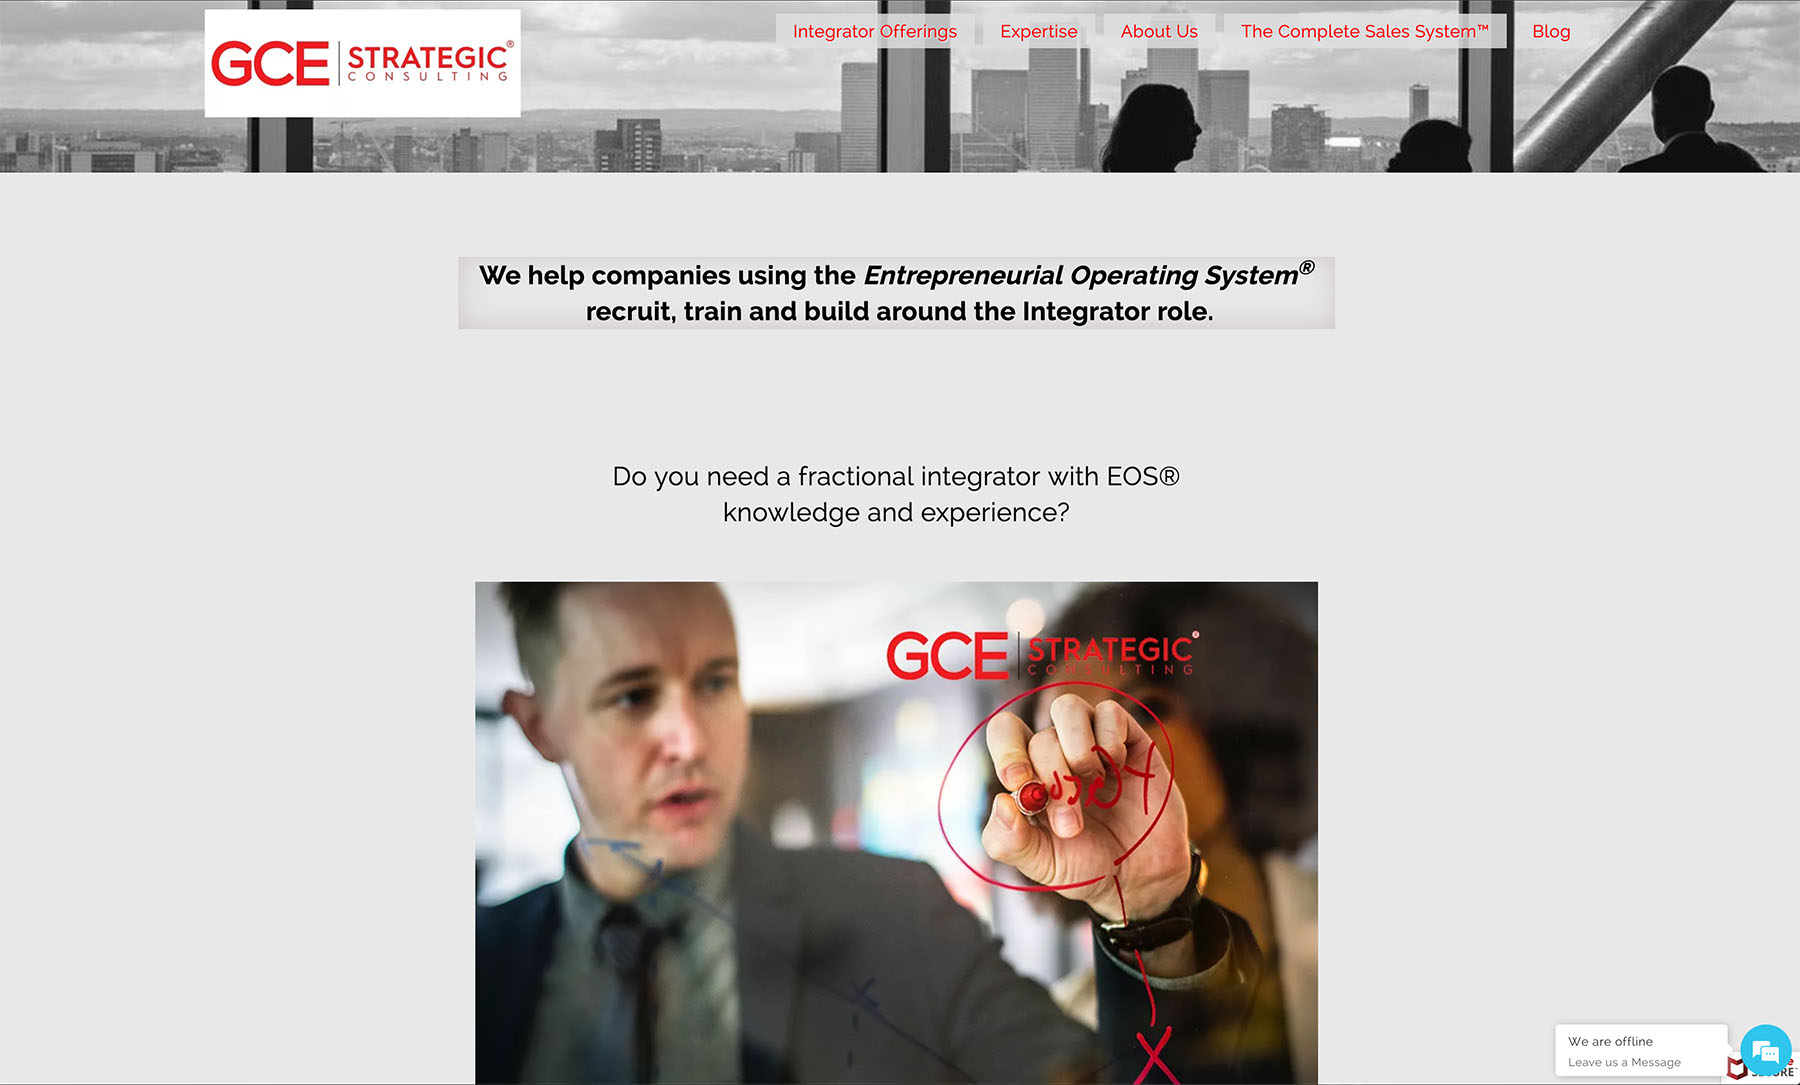 GCE Strategic Consulting